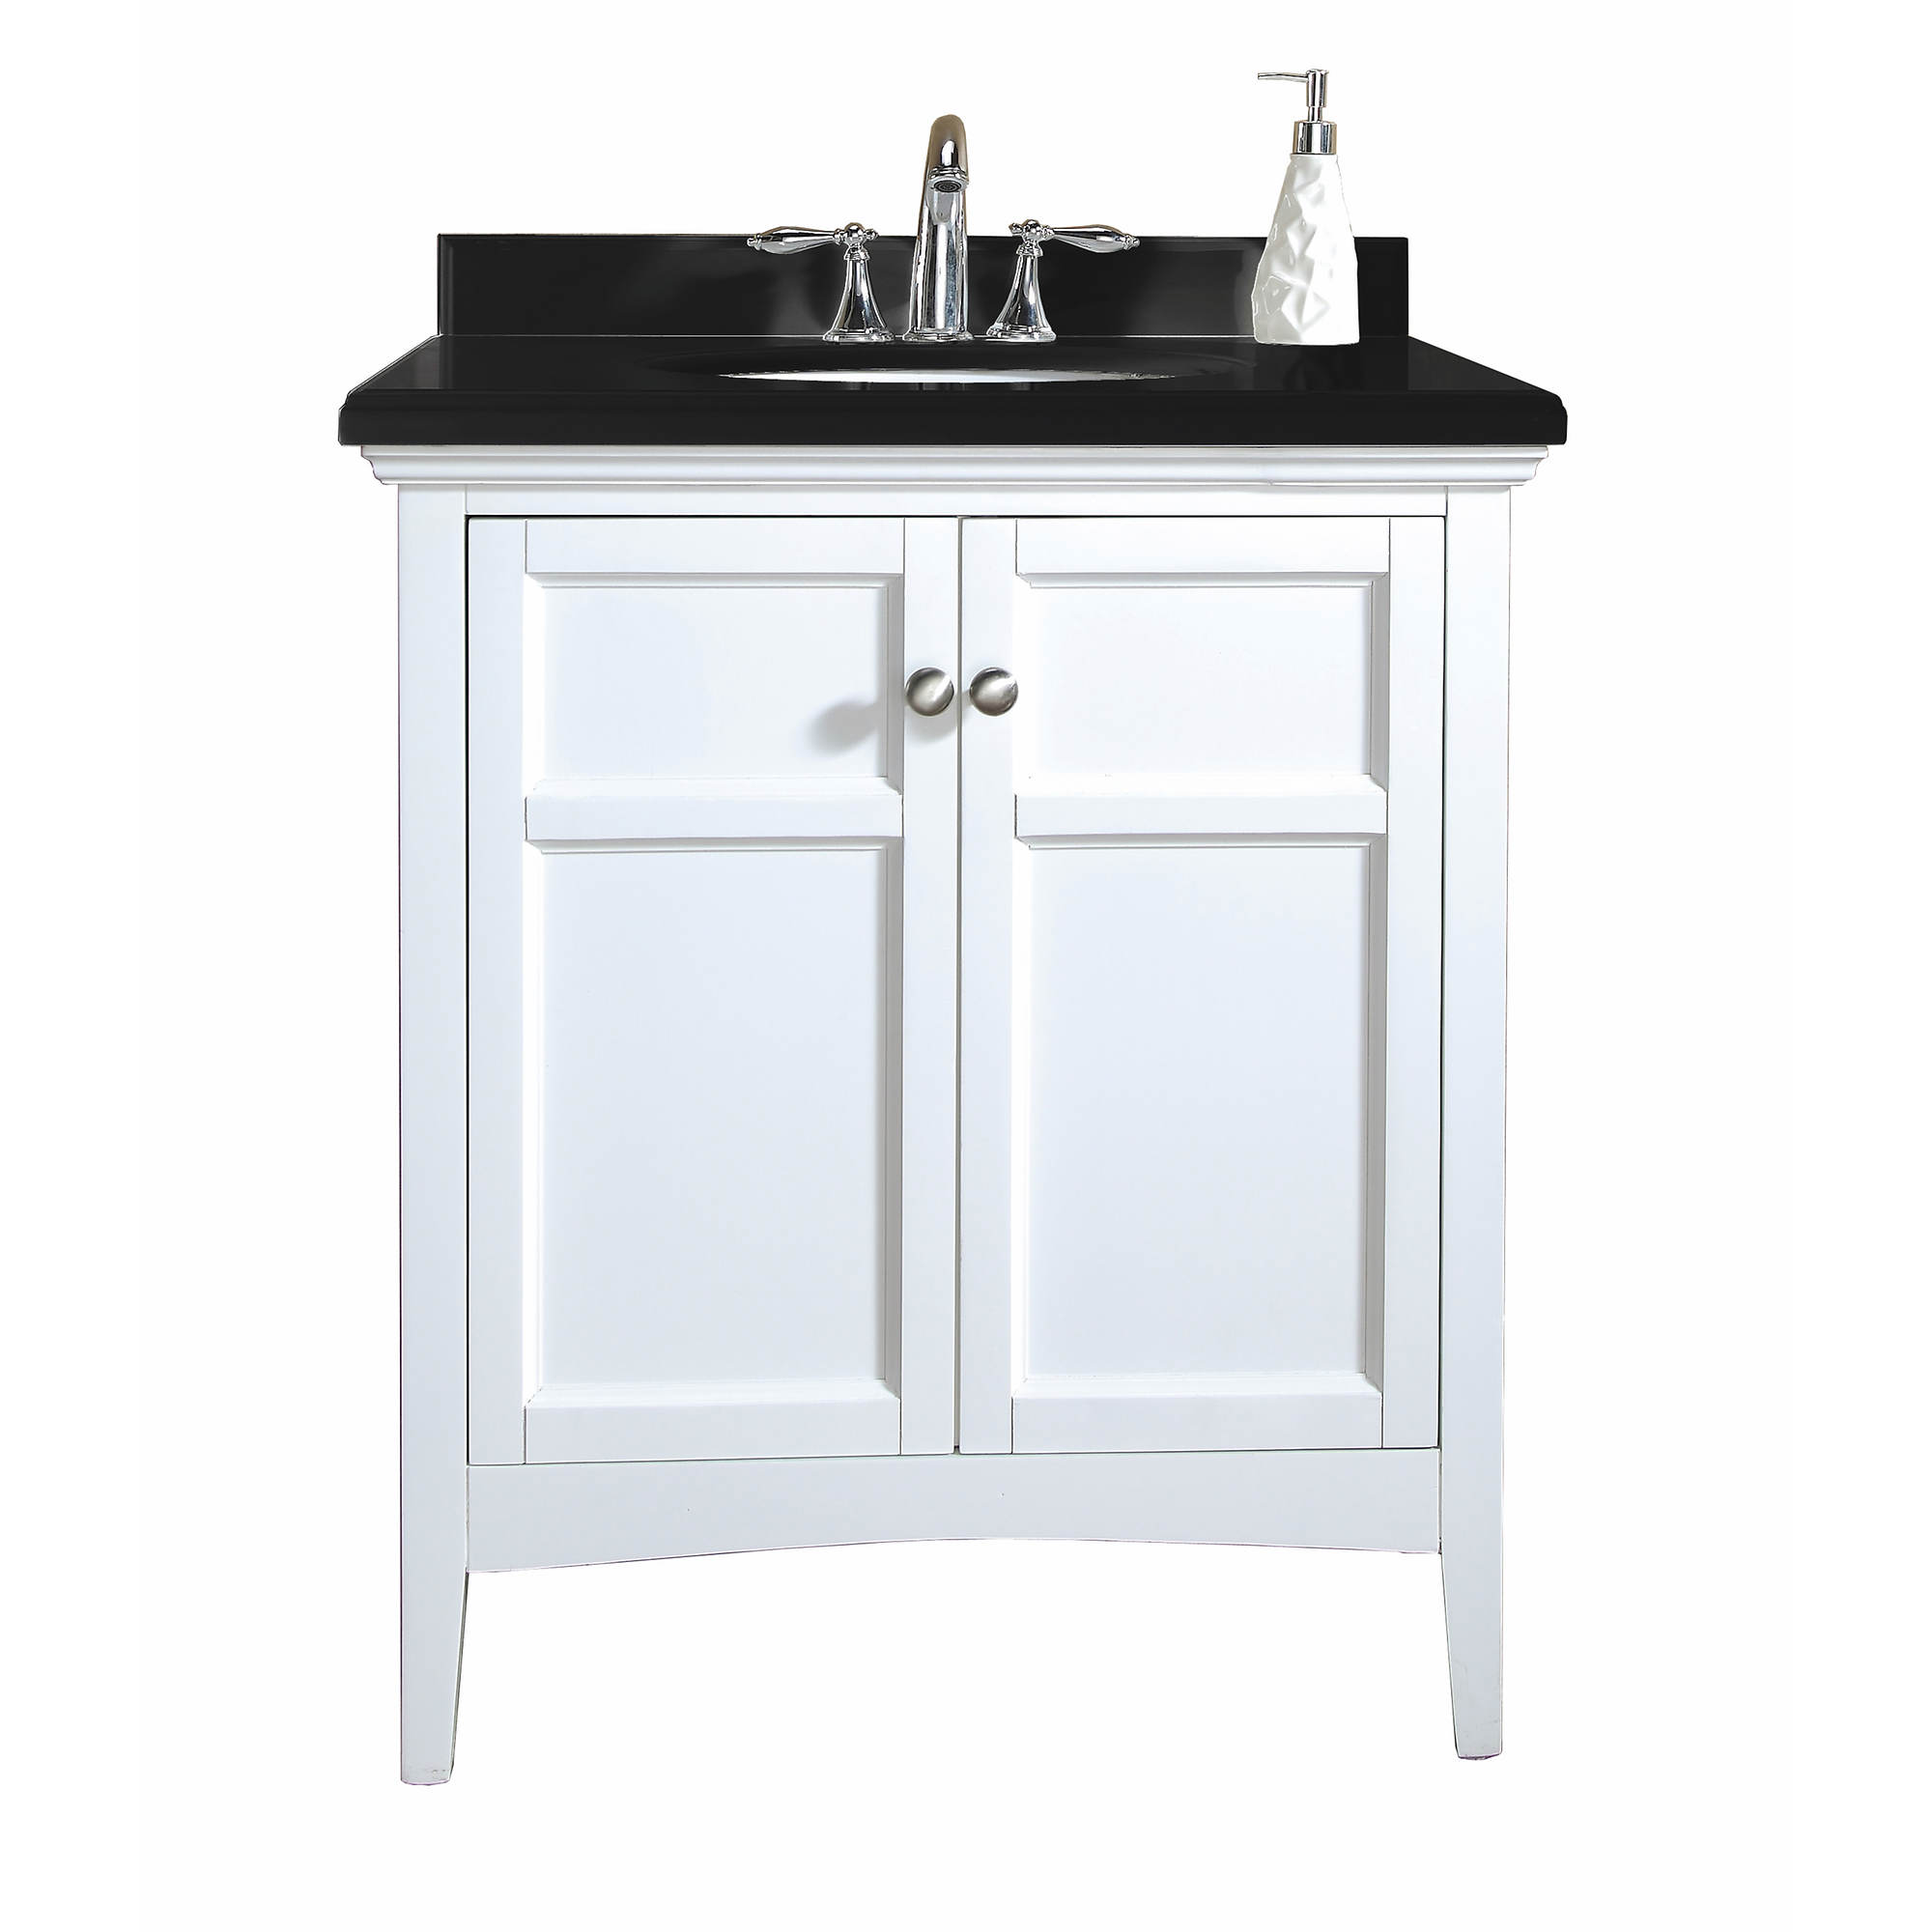 undermount wholesale with pretty for inch menards your cozy sink ideas bowl vanity nickel brushed and lighting vanities fill sets furniture bathroom sinks